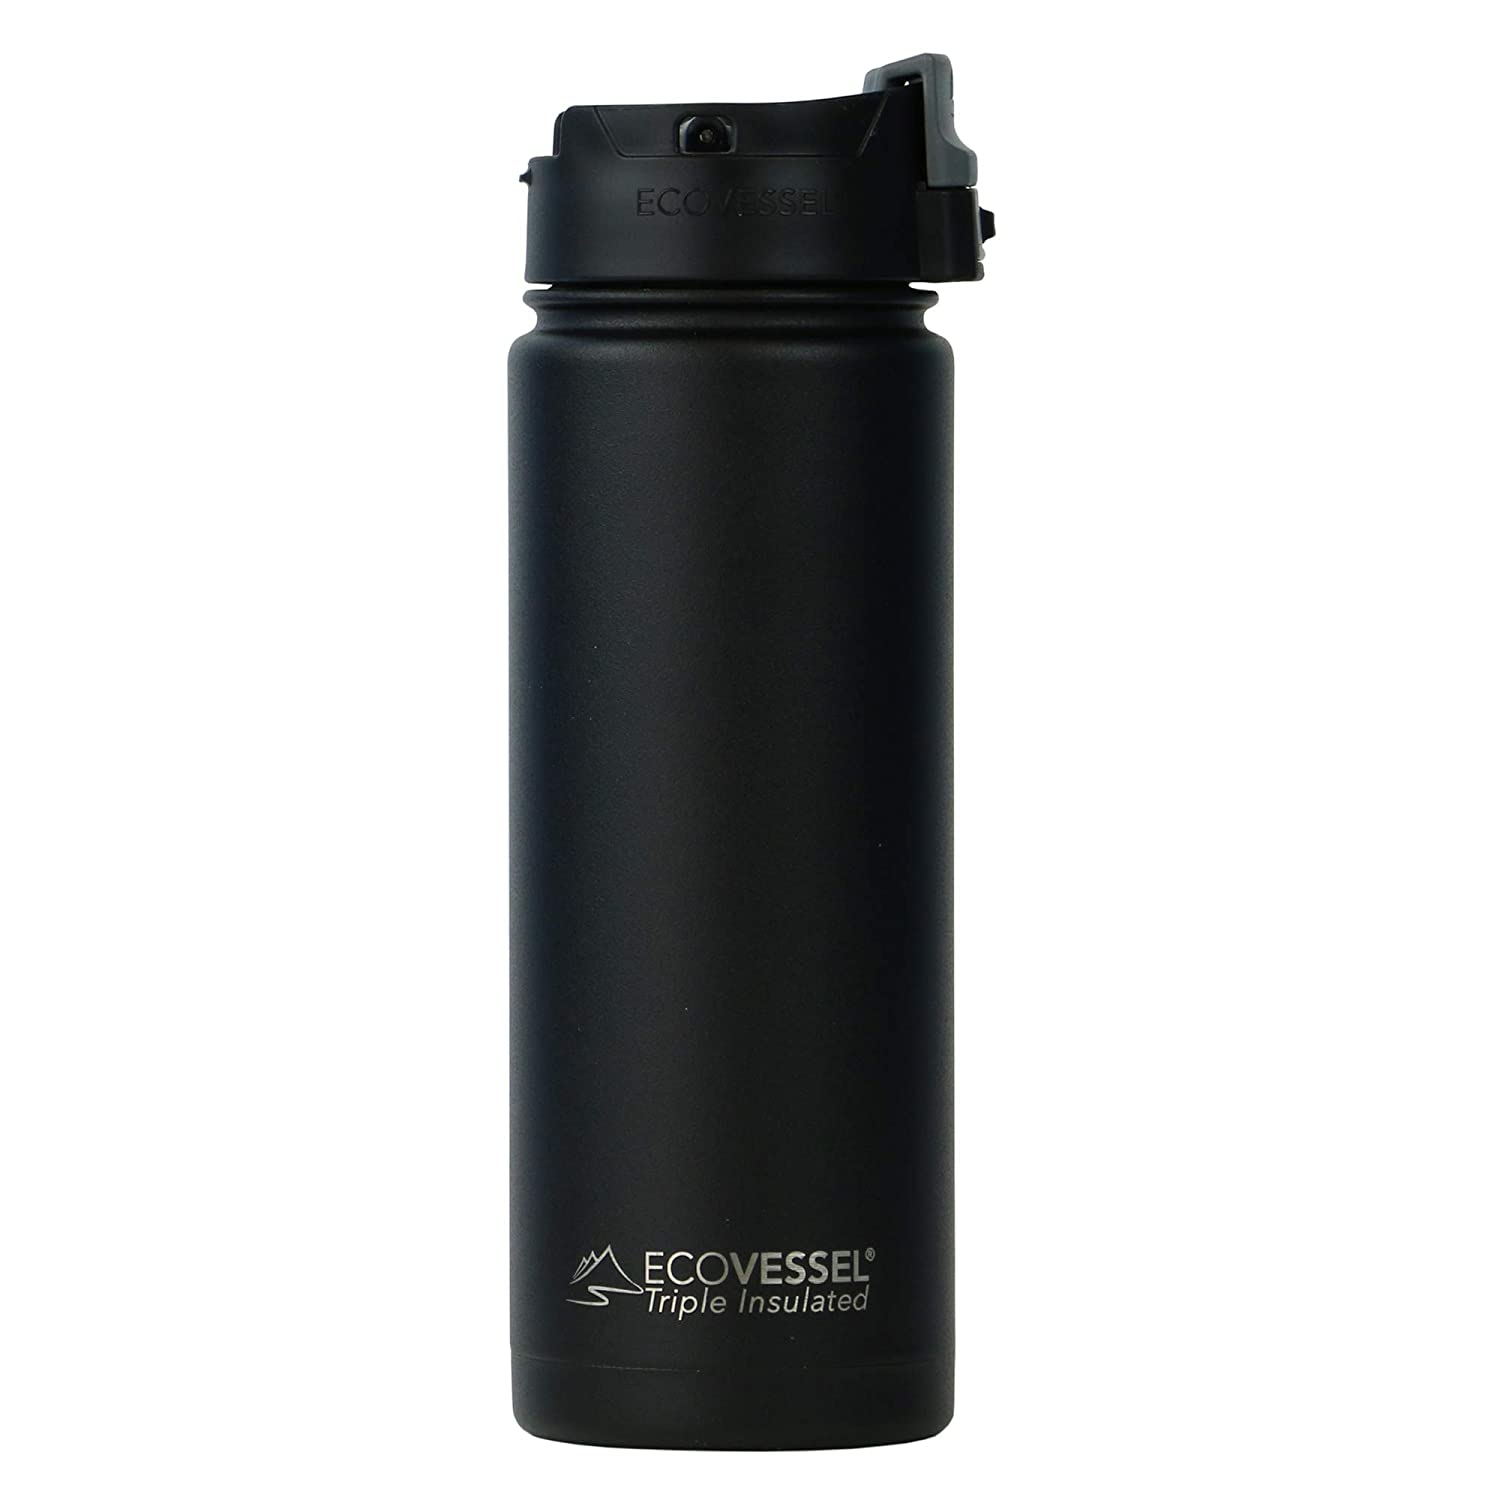 EcoVessel PERK Vacuum Insulated Stainless Steel Coffee & Tea Travel Bottle with Push Button Locking Top - 16 oz Tumbler Mug